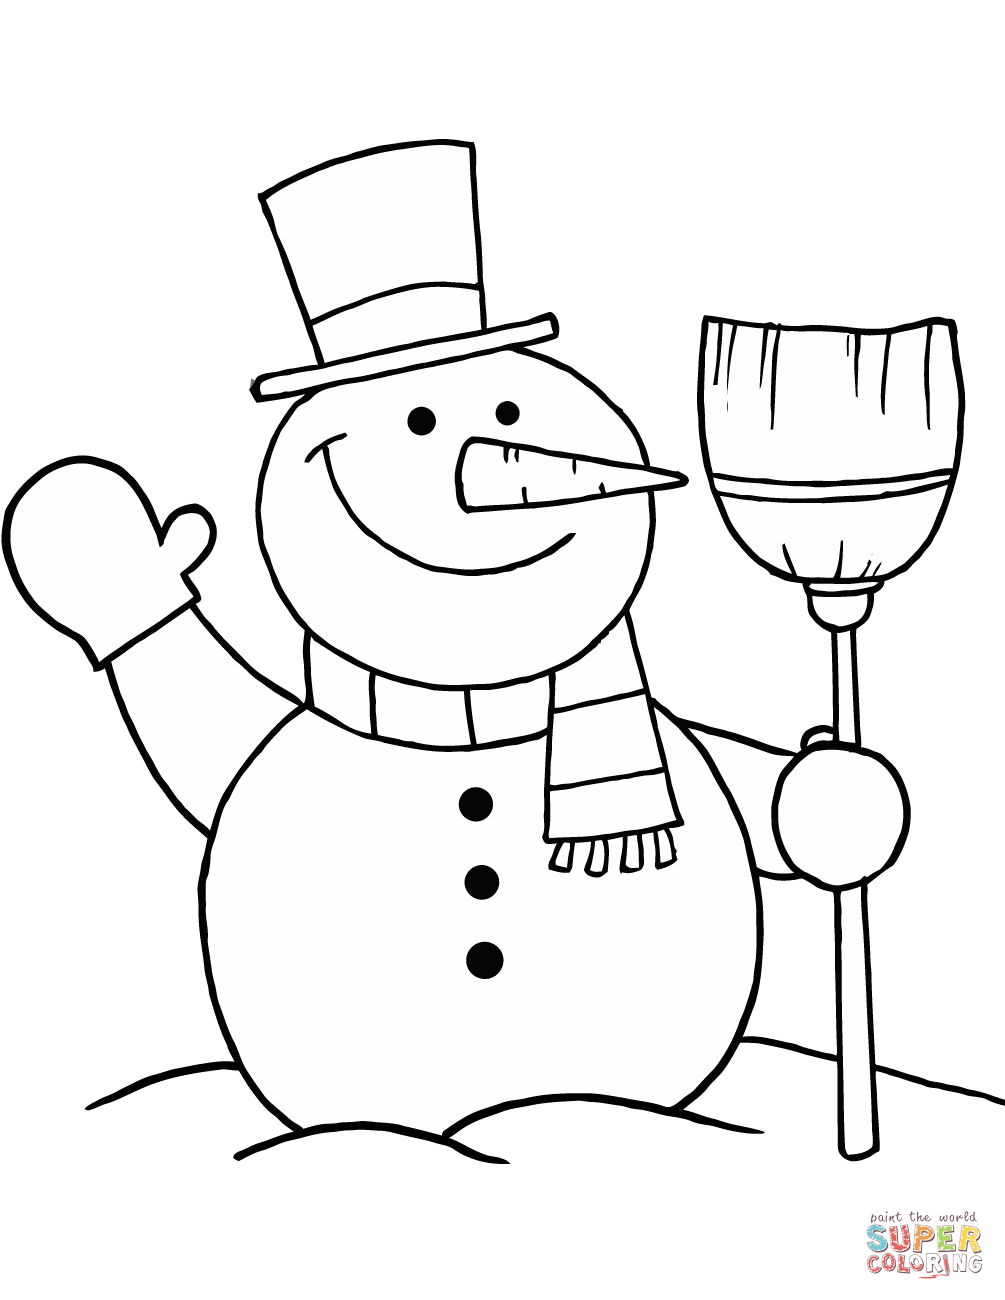 1005x1300 Snowman With Broom Coloring Page Free Printable Pages